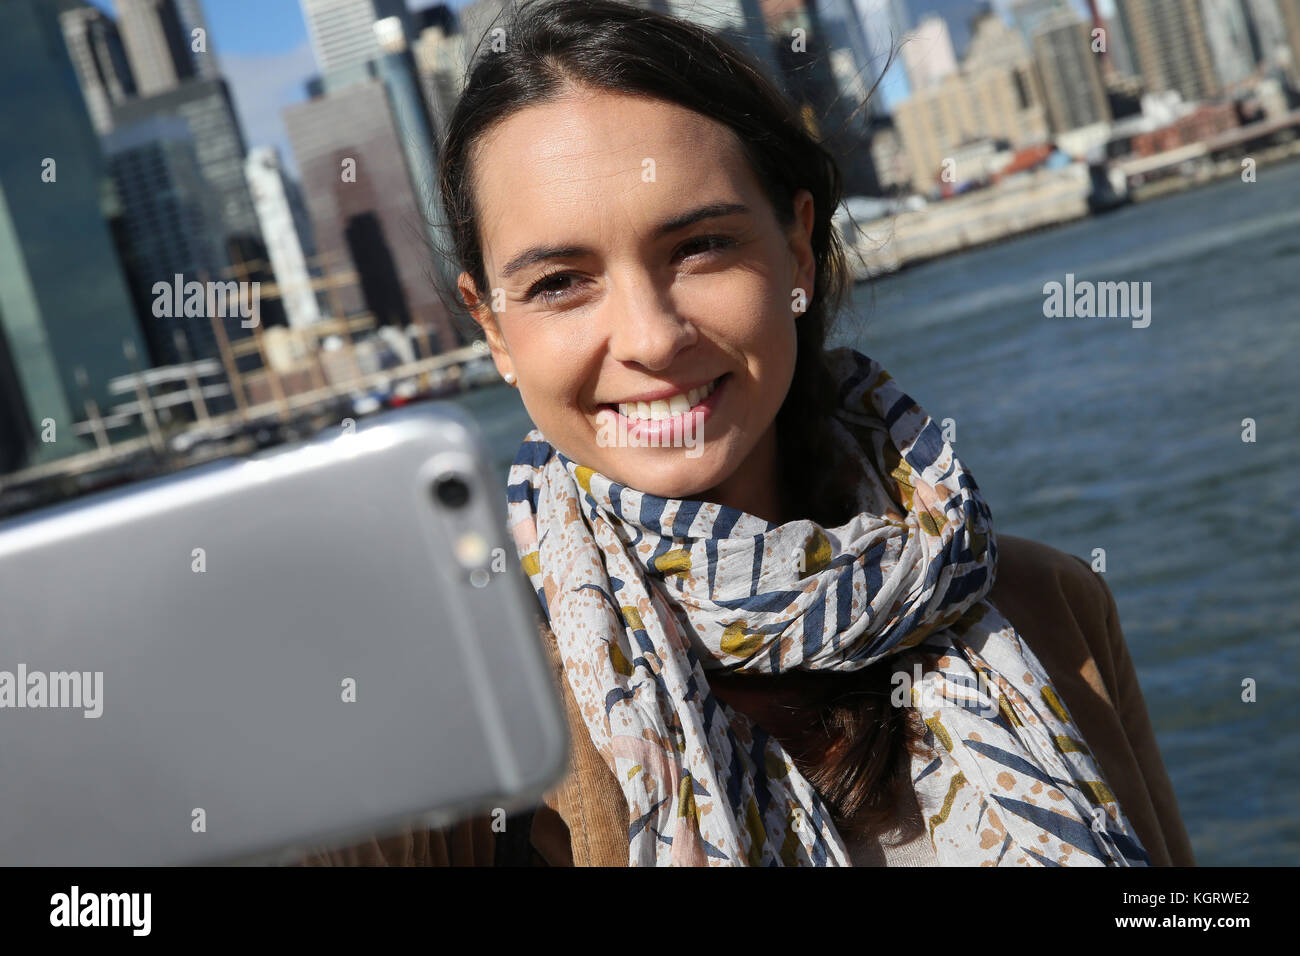 Brunette girl making selfy with Manhattan in background - Stock Image